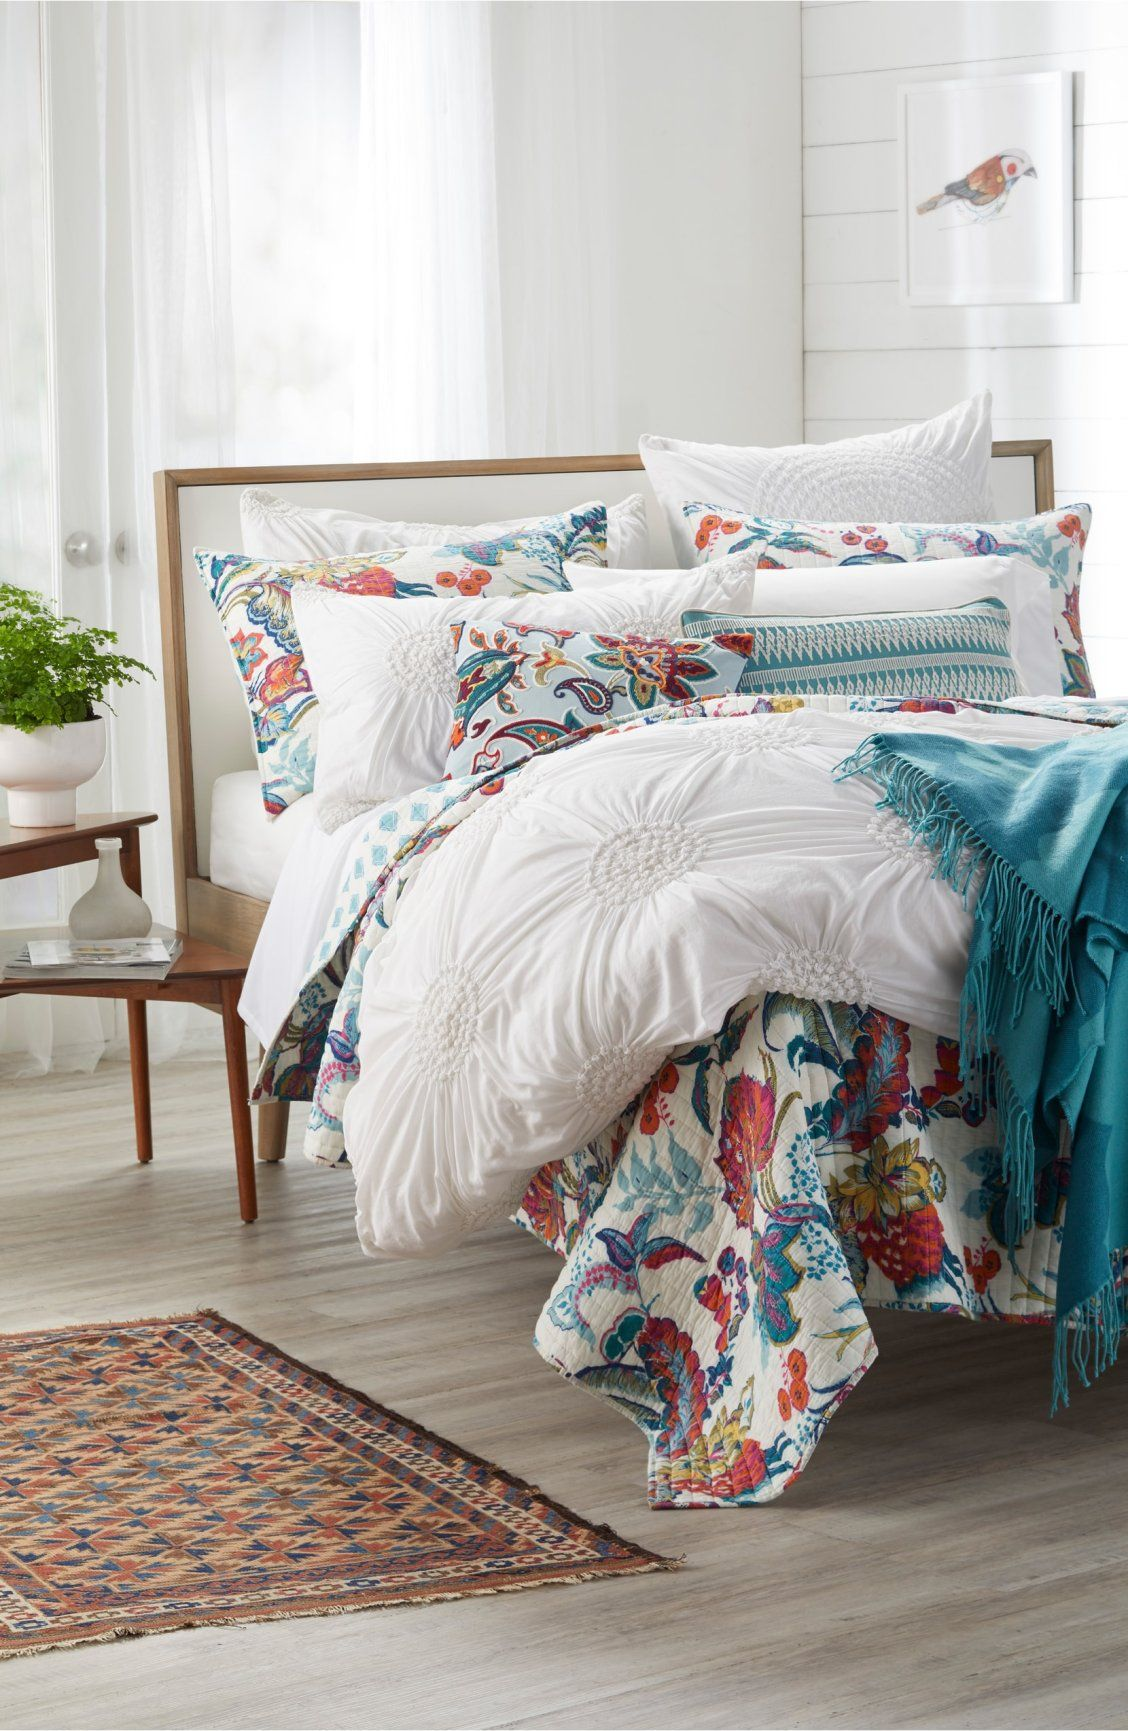 This Lightweight Cotton Quilt Reverses From A Vintage Floral Pattern